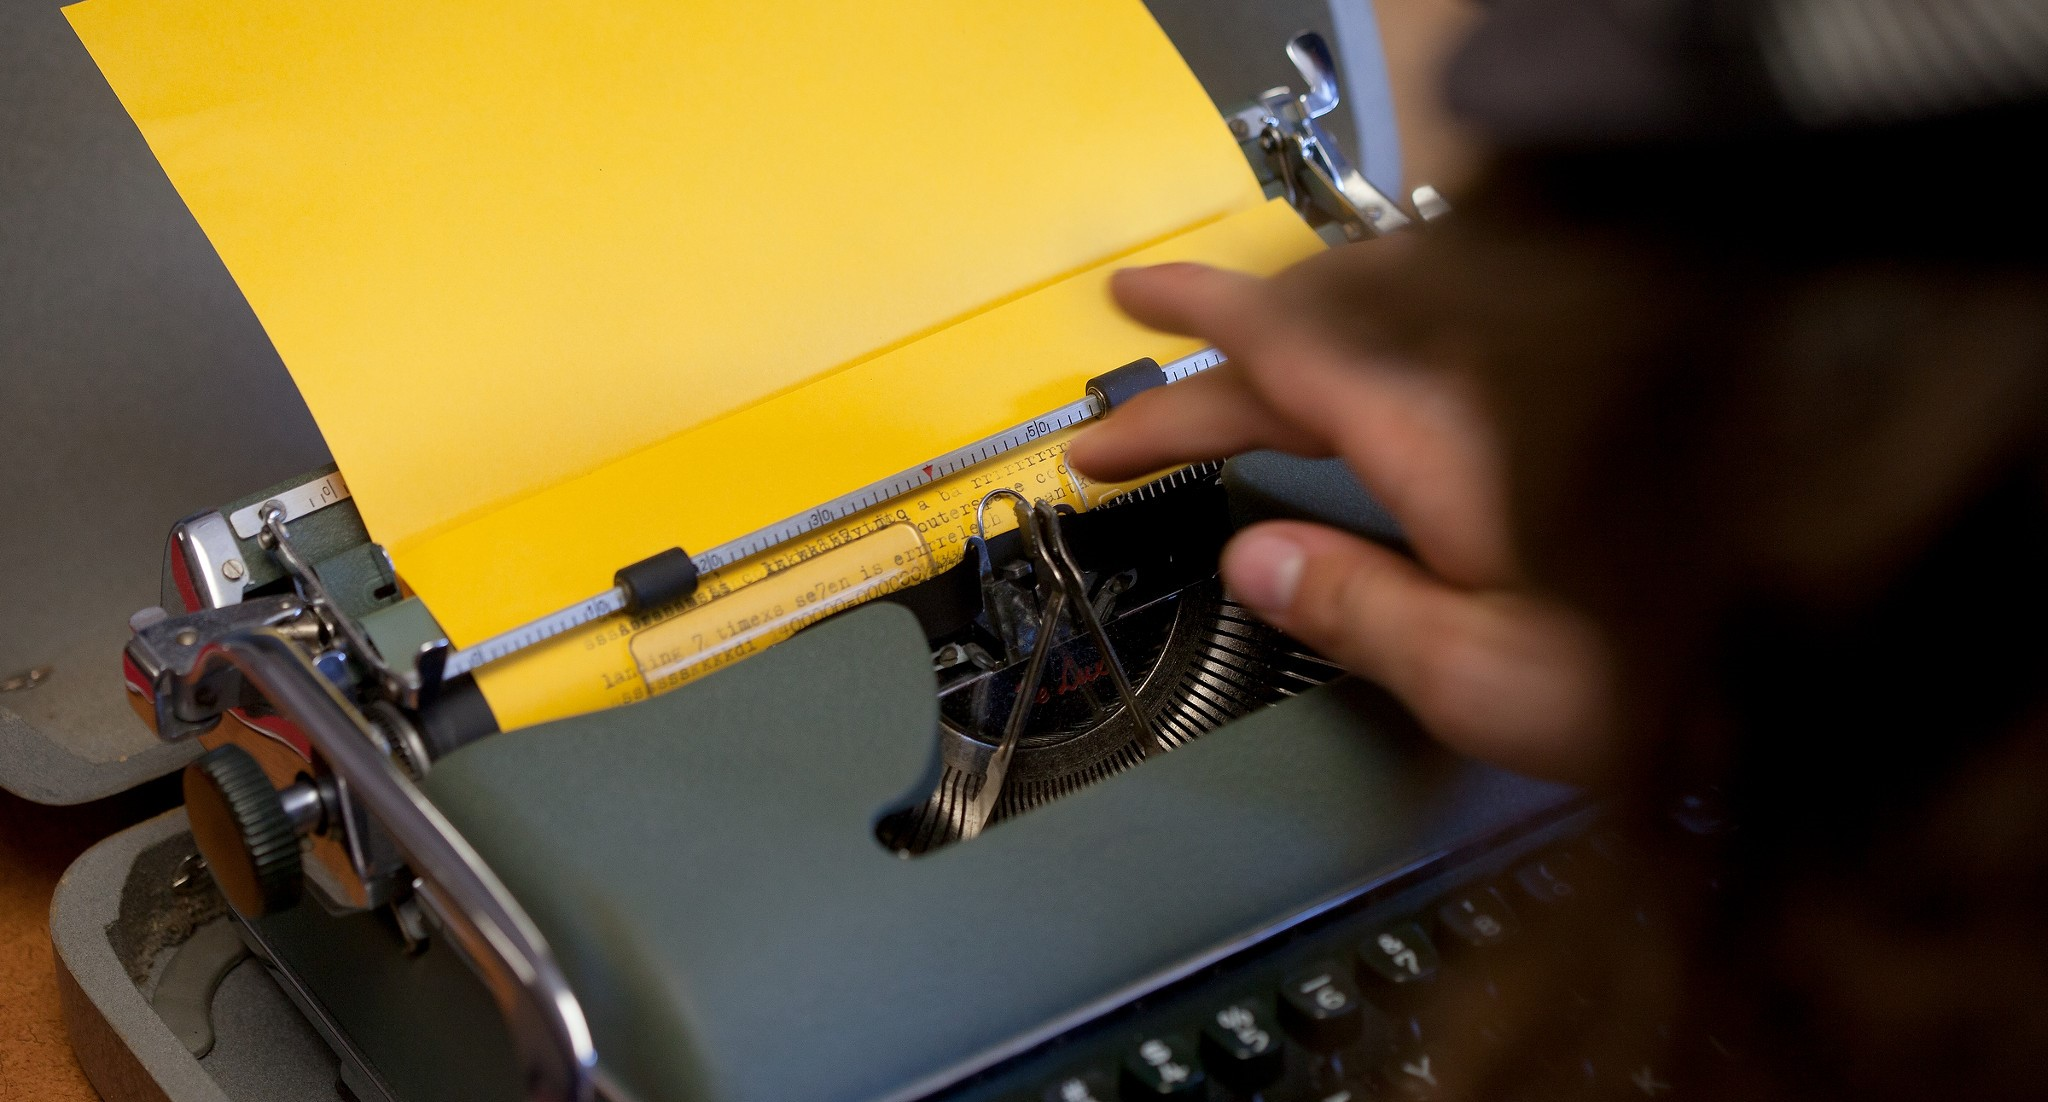 Student typing on a yellow page in a typewriter